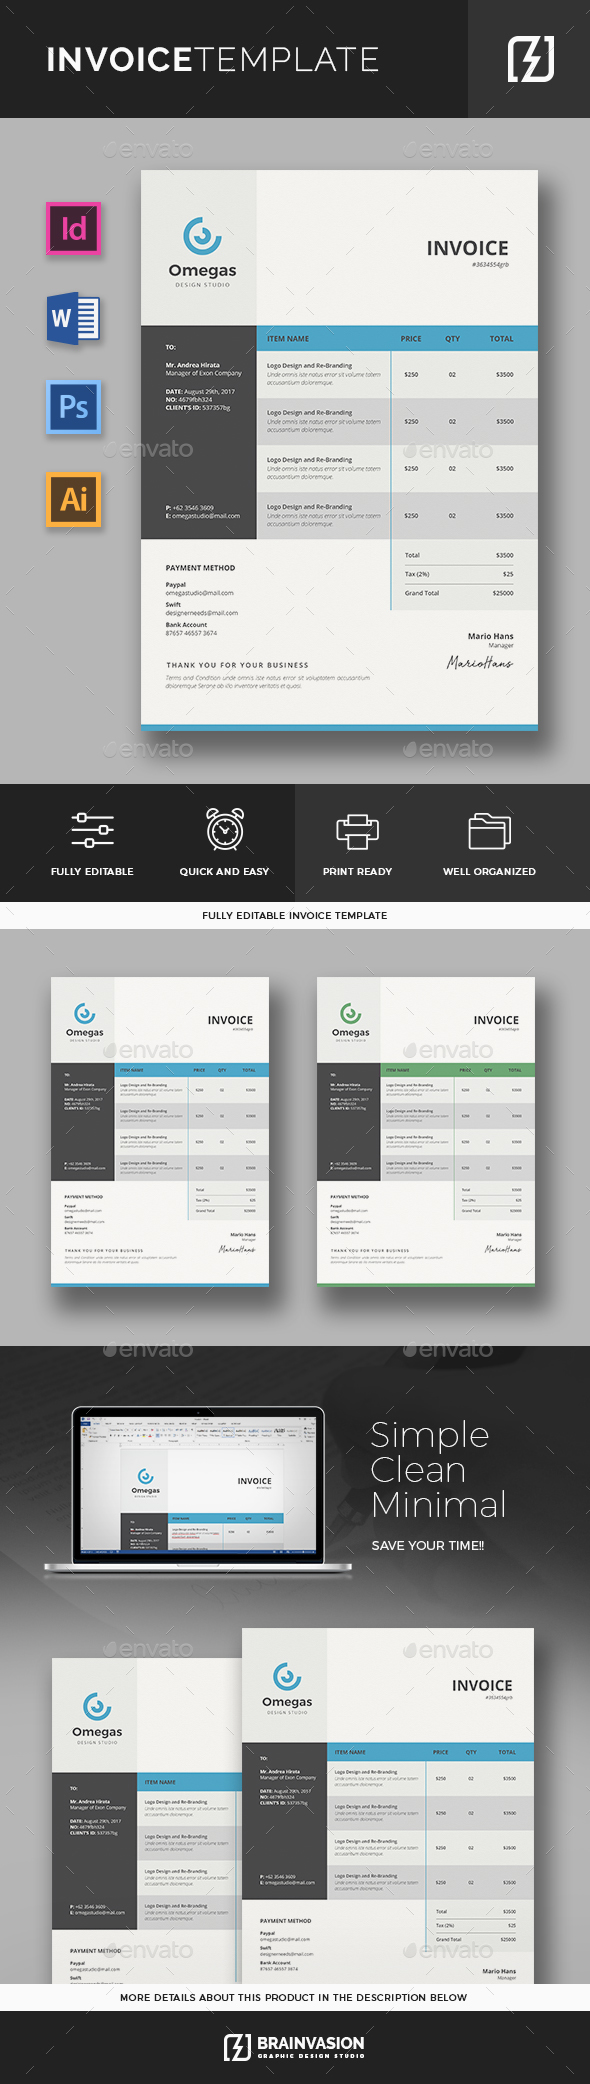 Canadian Commercial Invoice Word Business Proposal  Invoice Templates From Graphicriver Invoice Finance Company Word with Receipt Spelling  Gst Tax Invoice Excel